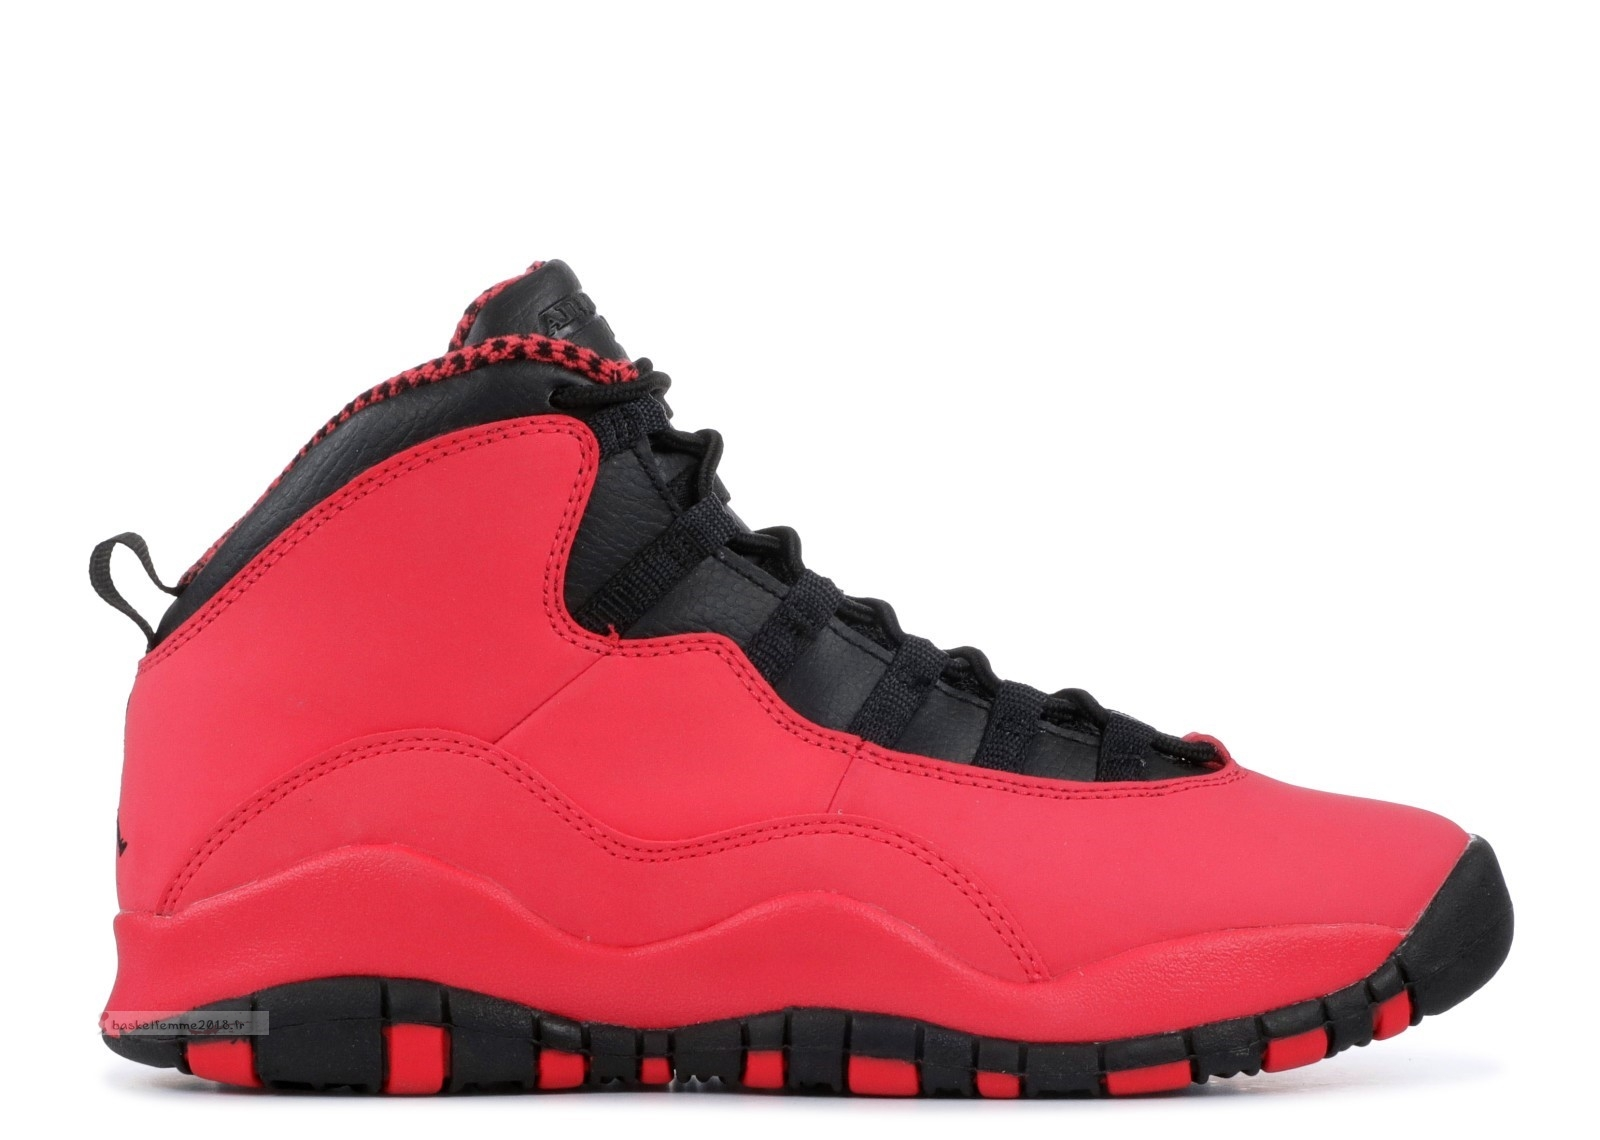 Air Jordan 10 Retro (Gs) Rouge (487211-605) Chaussure de Basket